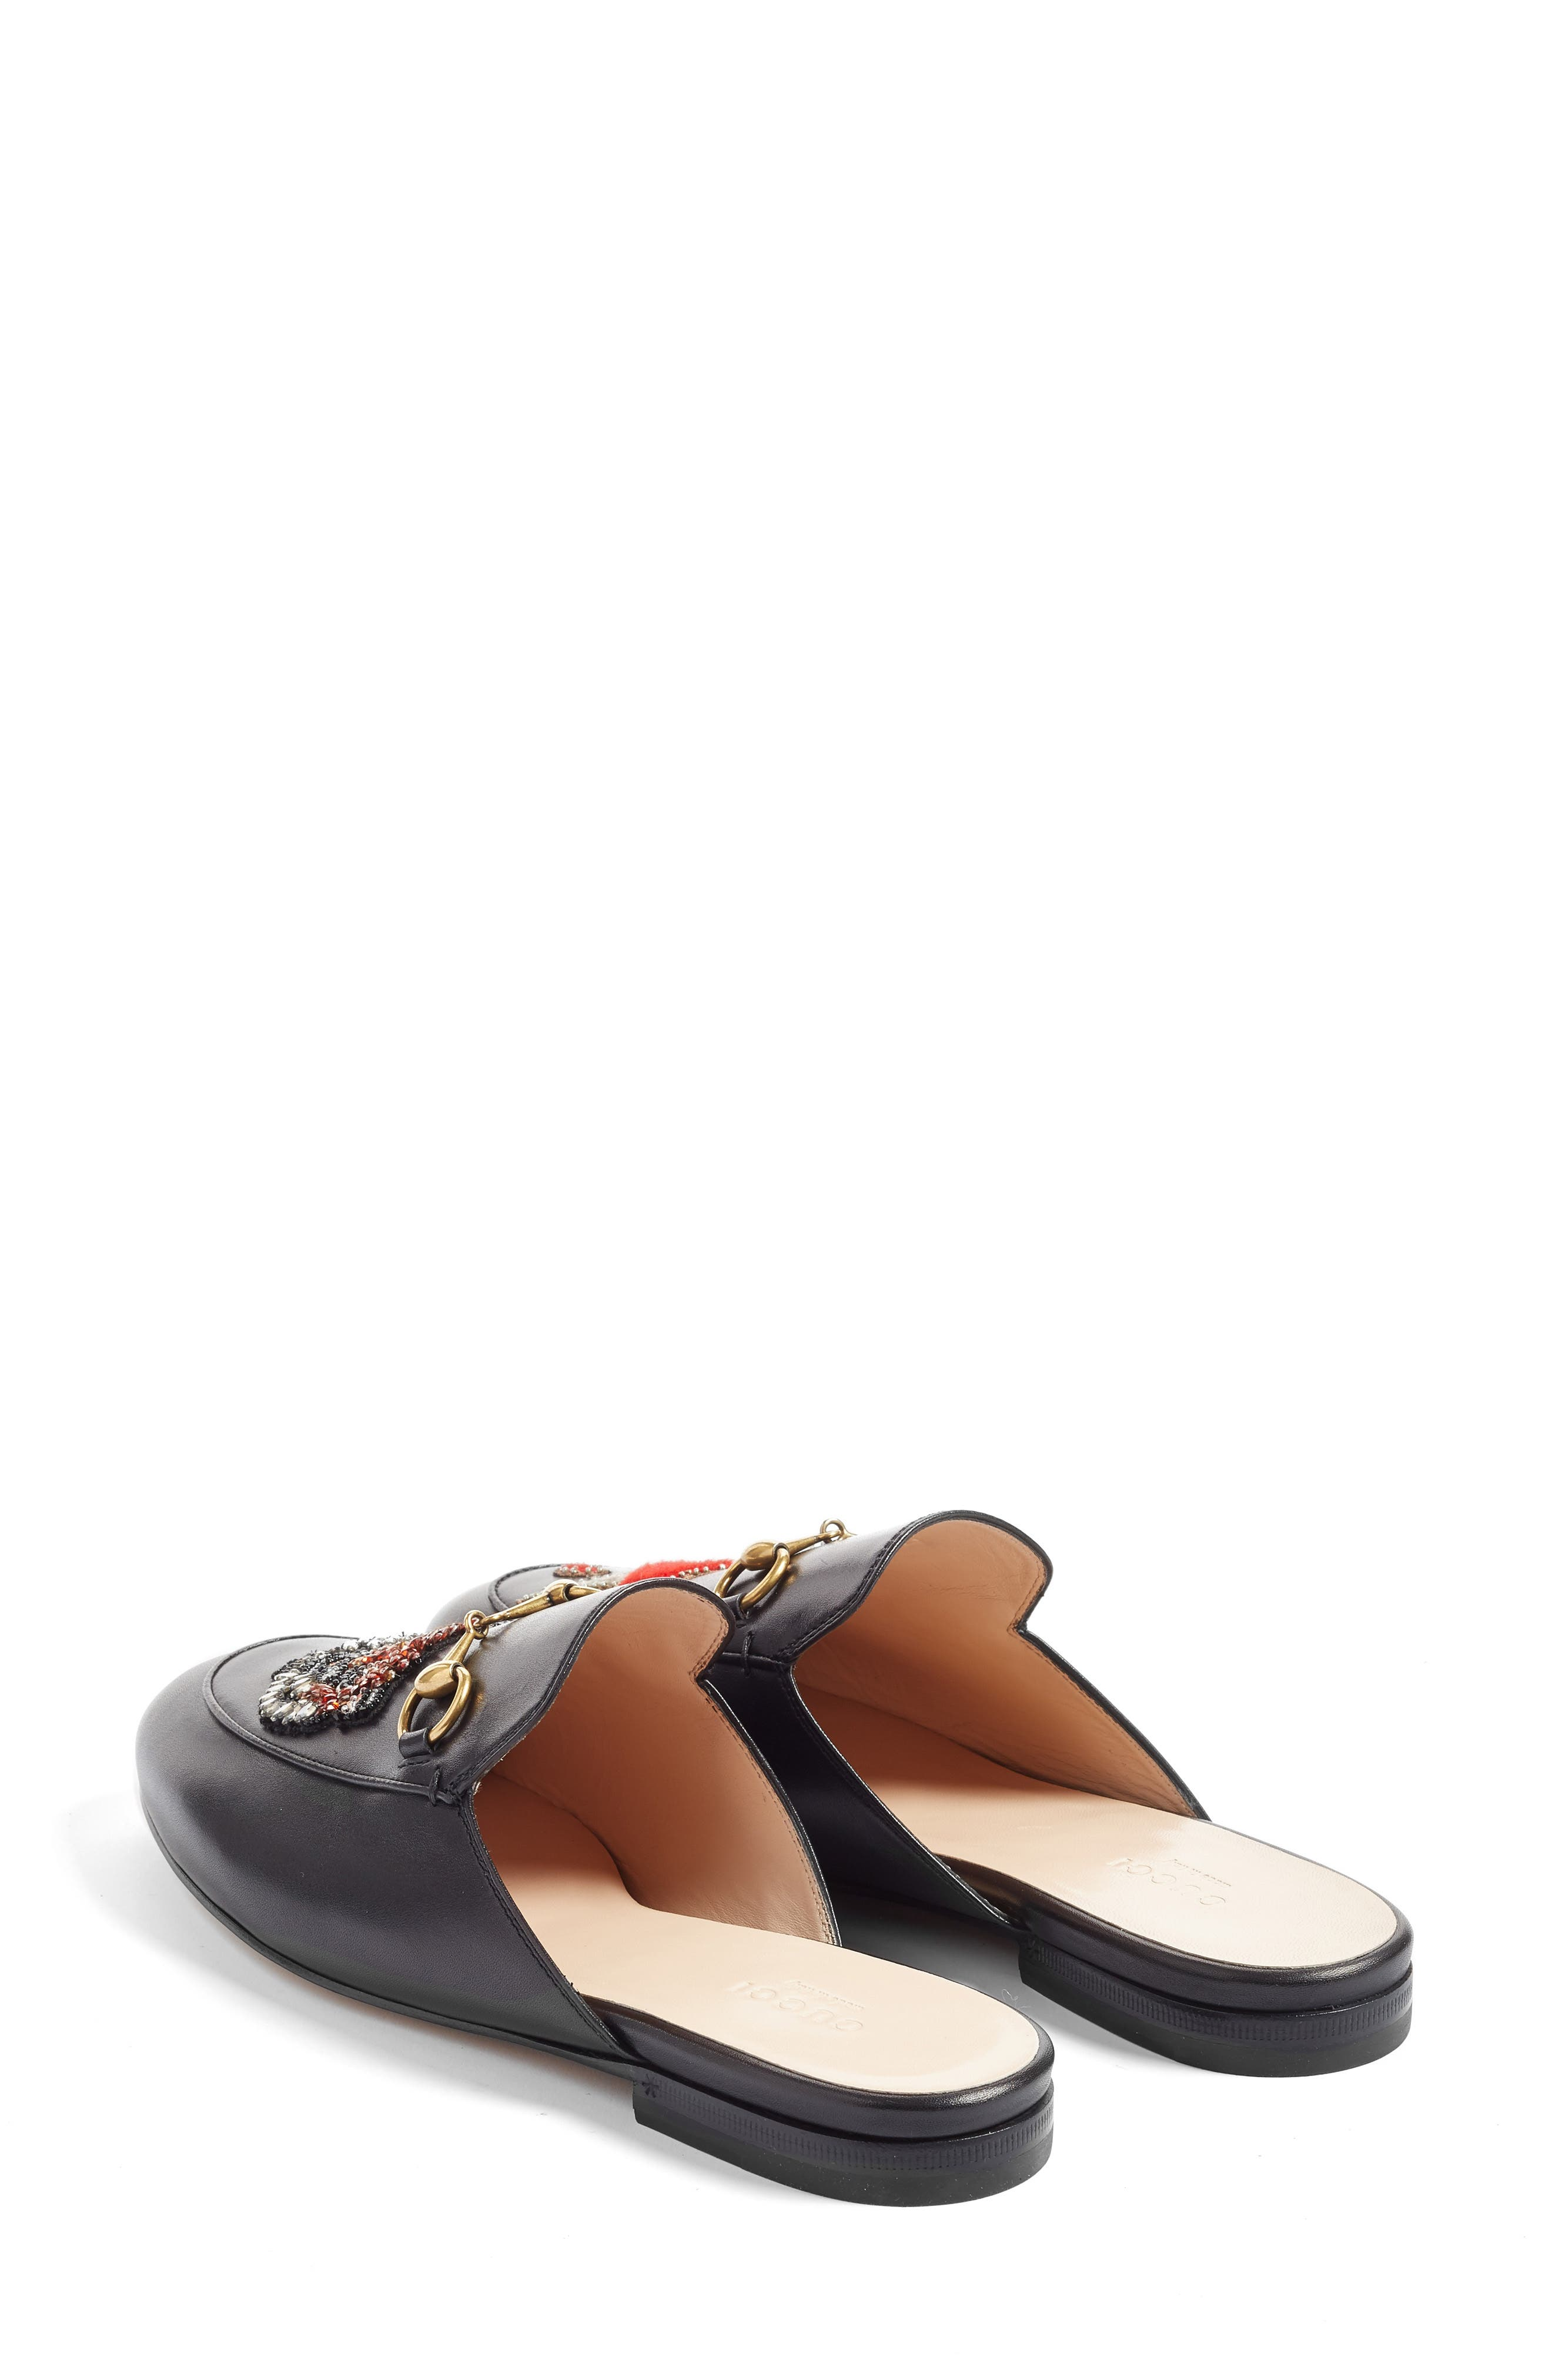 Princetown Mule Loafer,                             Alternate thumbnail 3, color,                             001